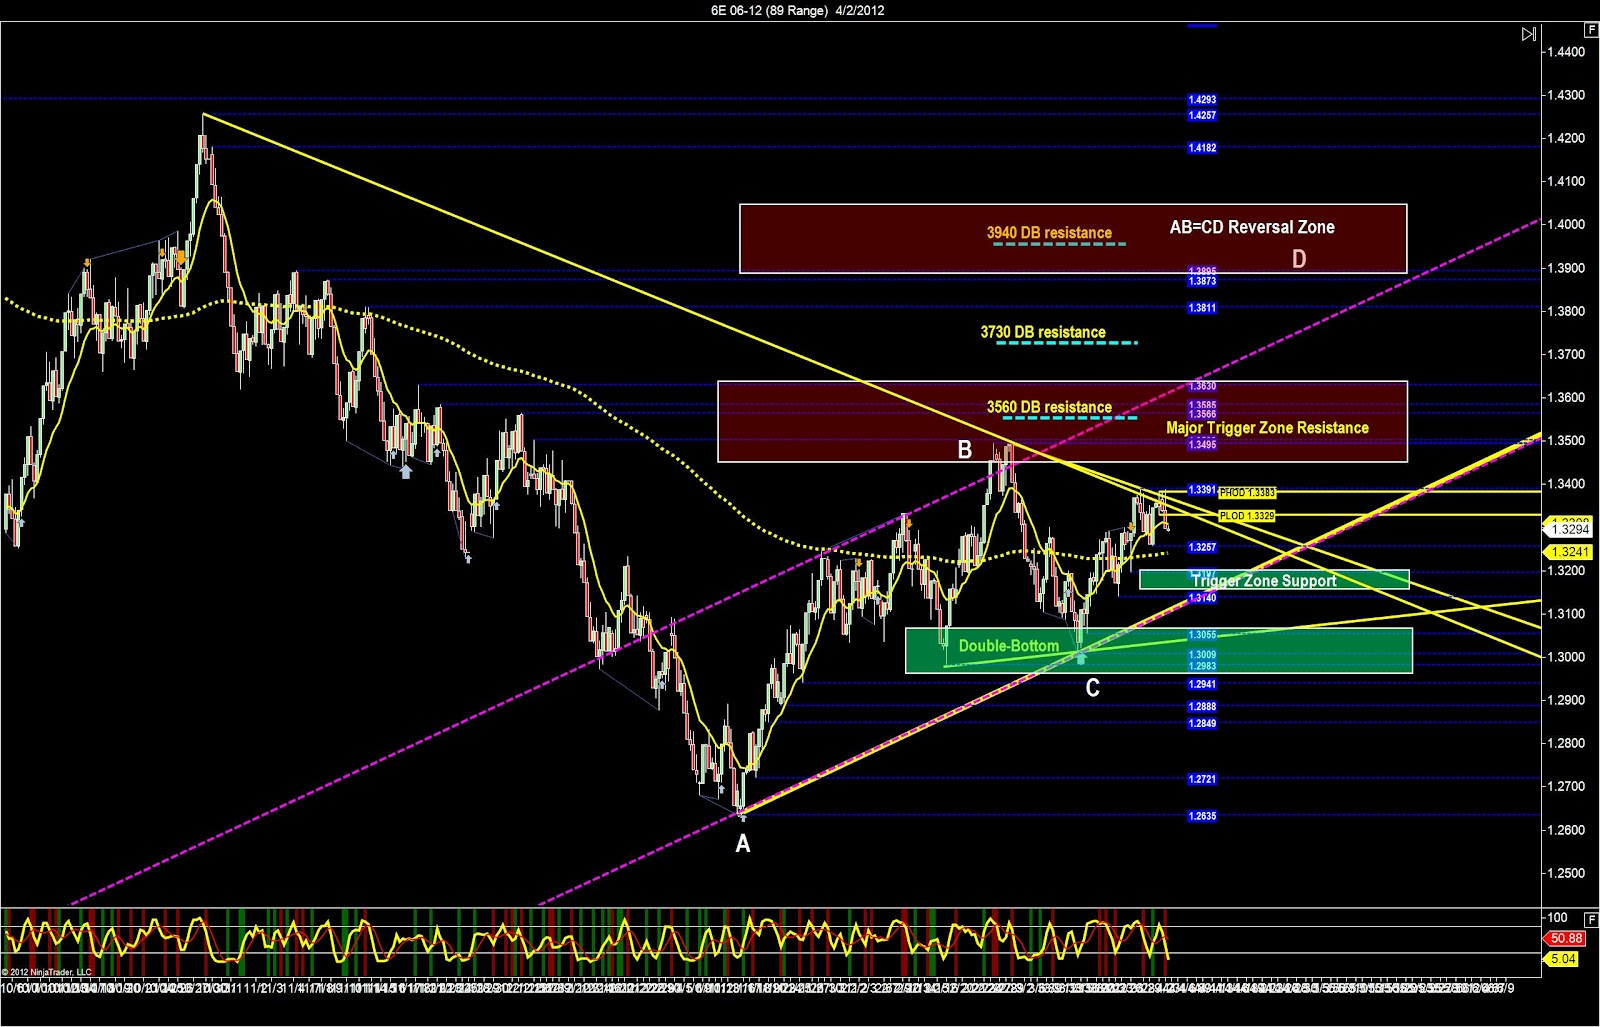 Euro Currency Futures Day Trading Strategy